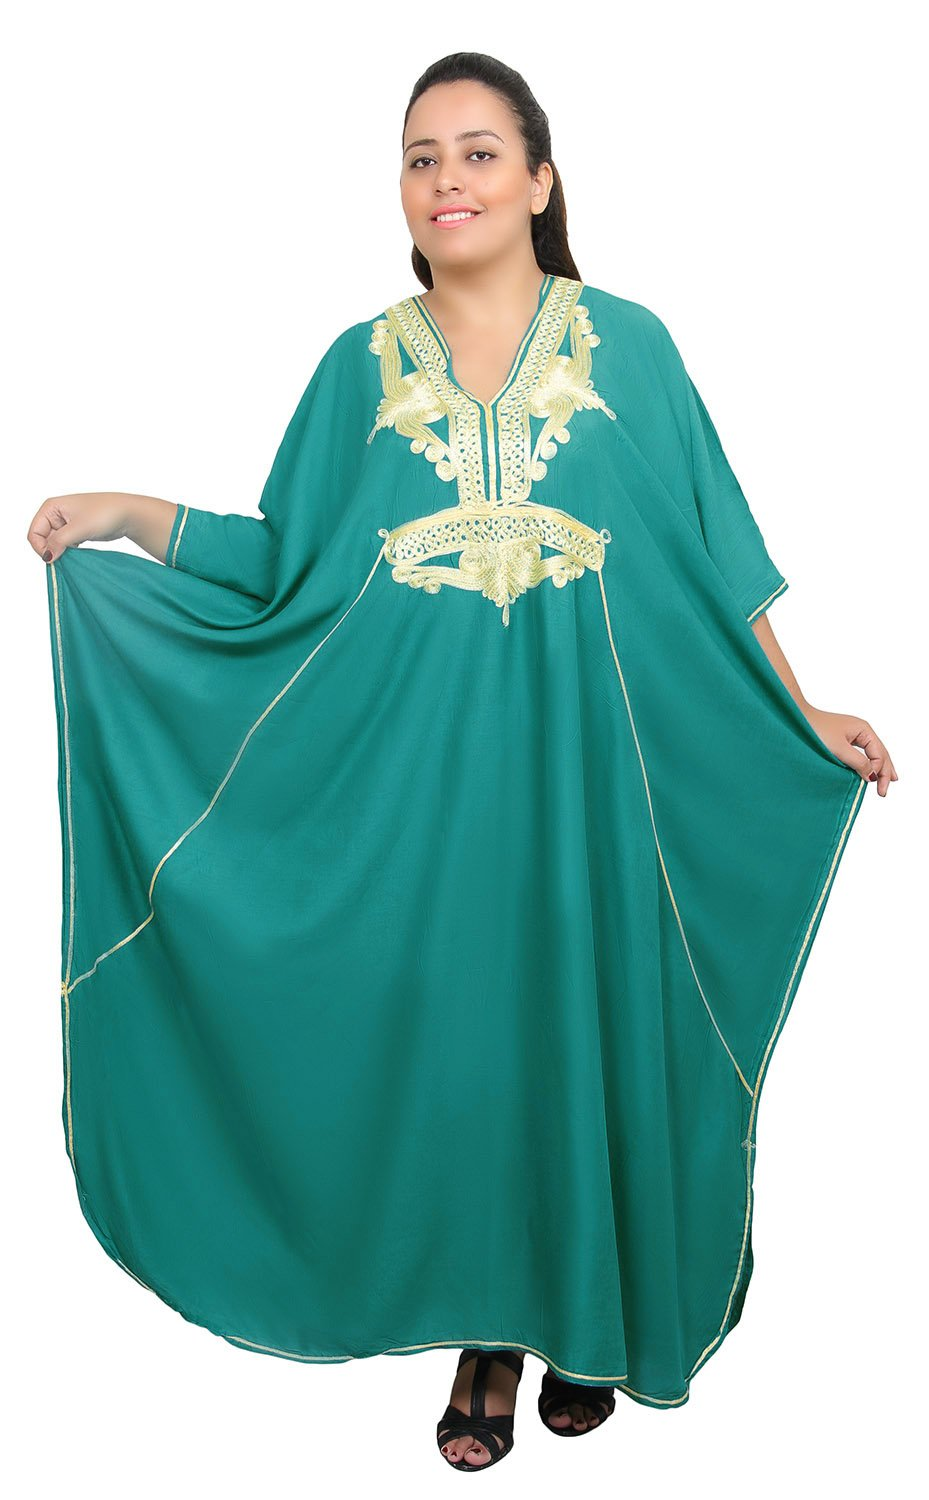 Moroccan Caftan Women Plus size Hand Made Caftan with Embroidery XXL to 4XL Green